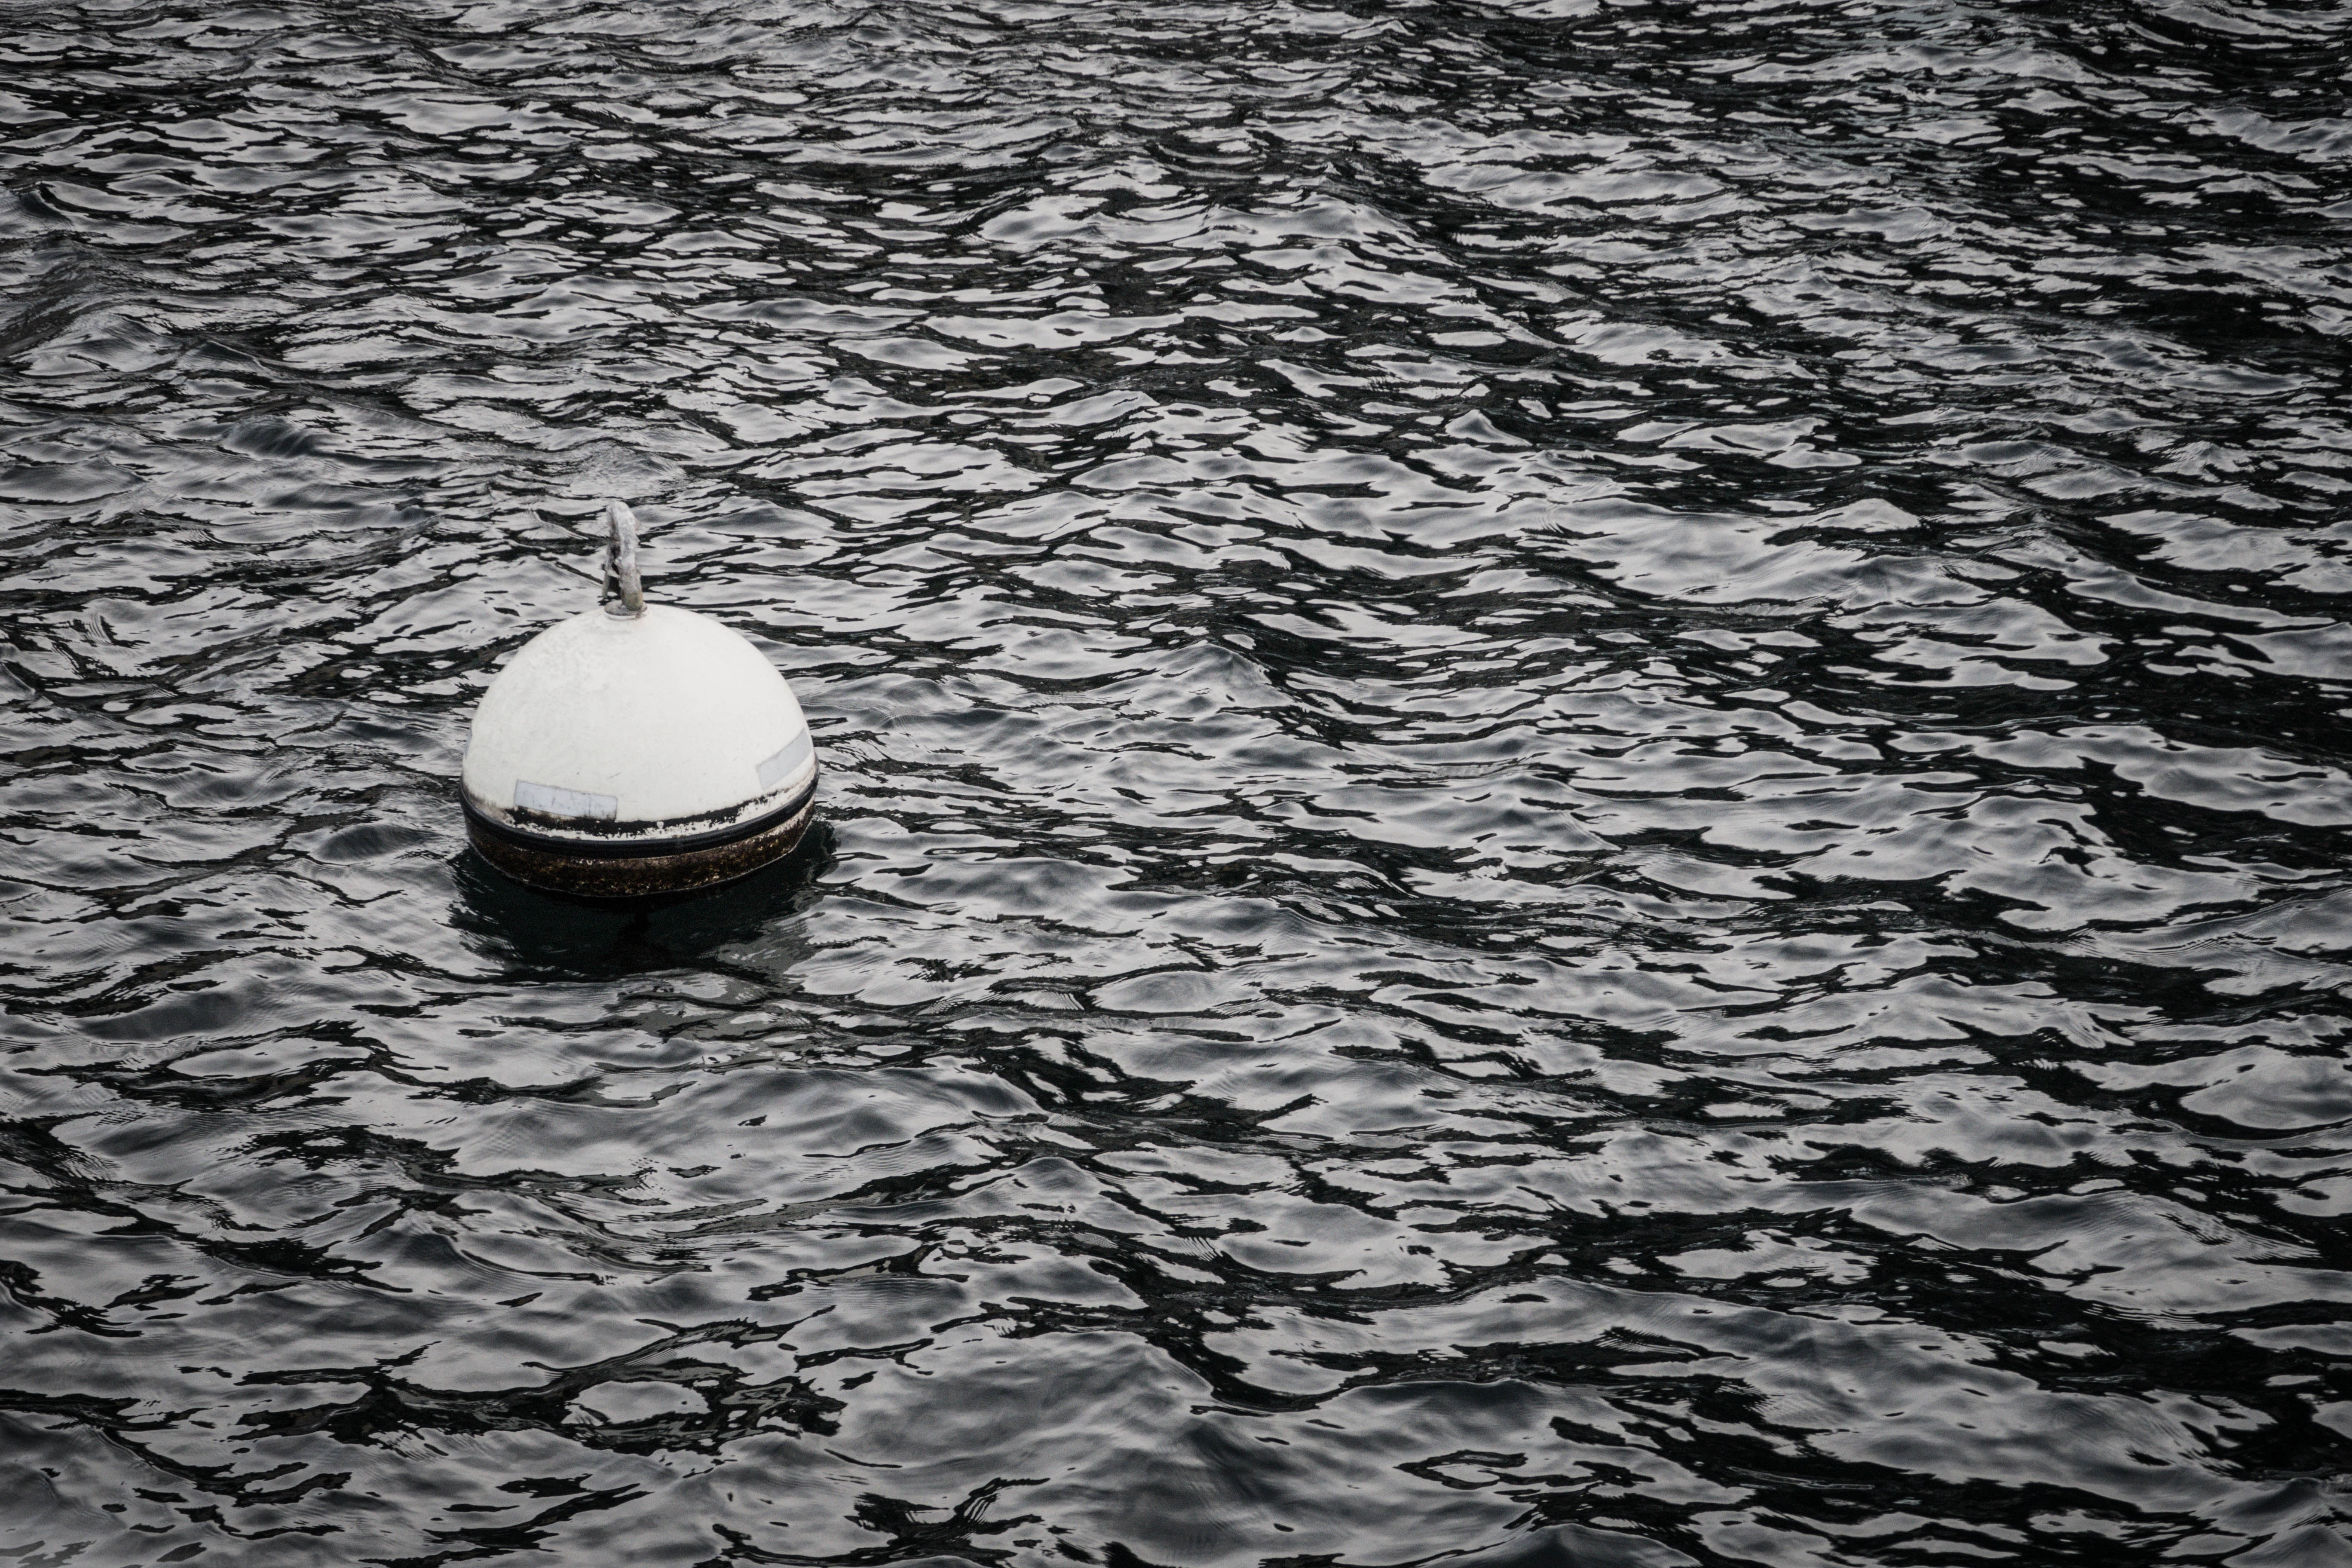 greyscale photo of bouy floating on body of water